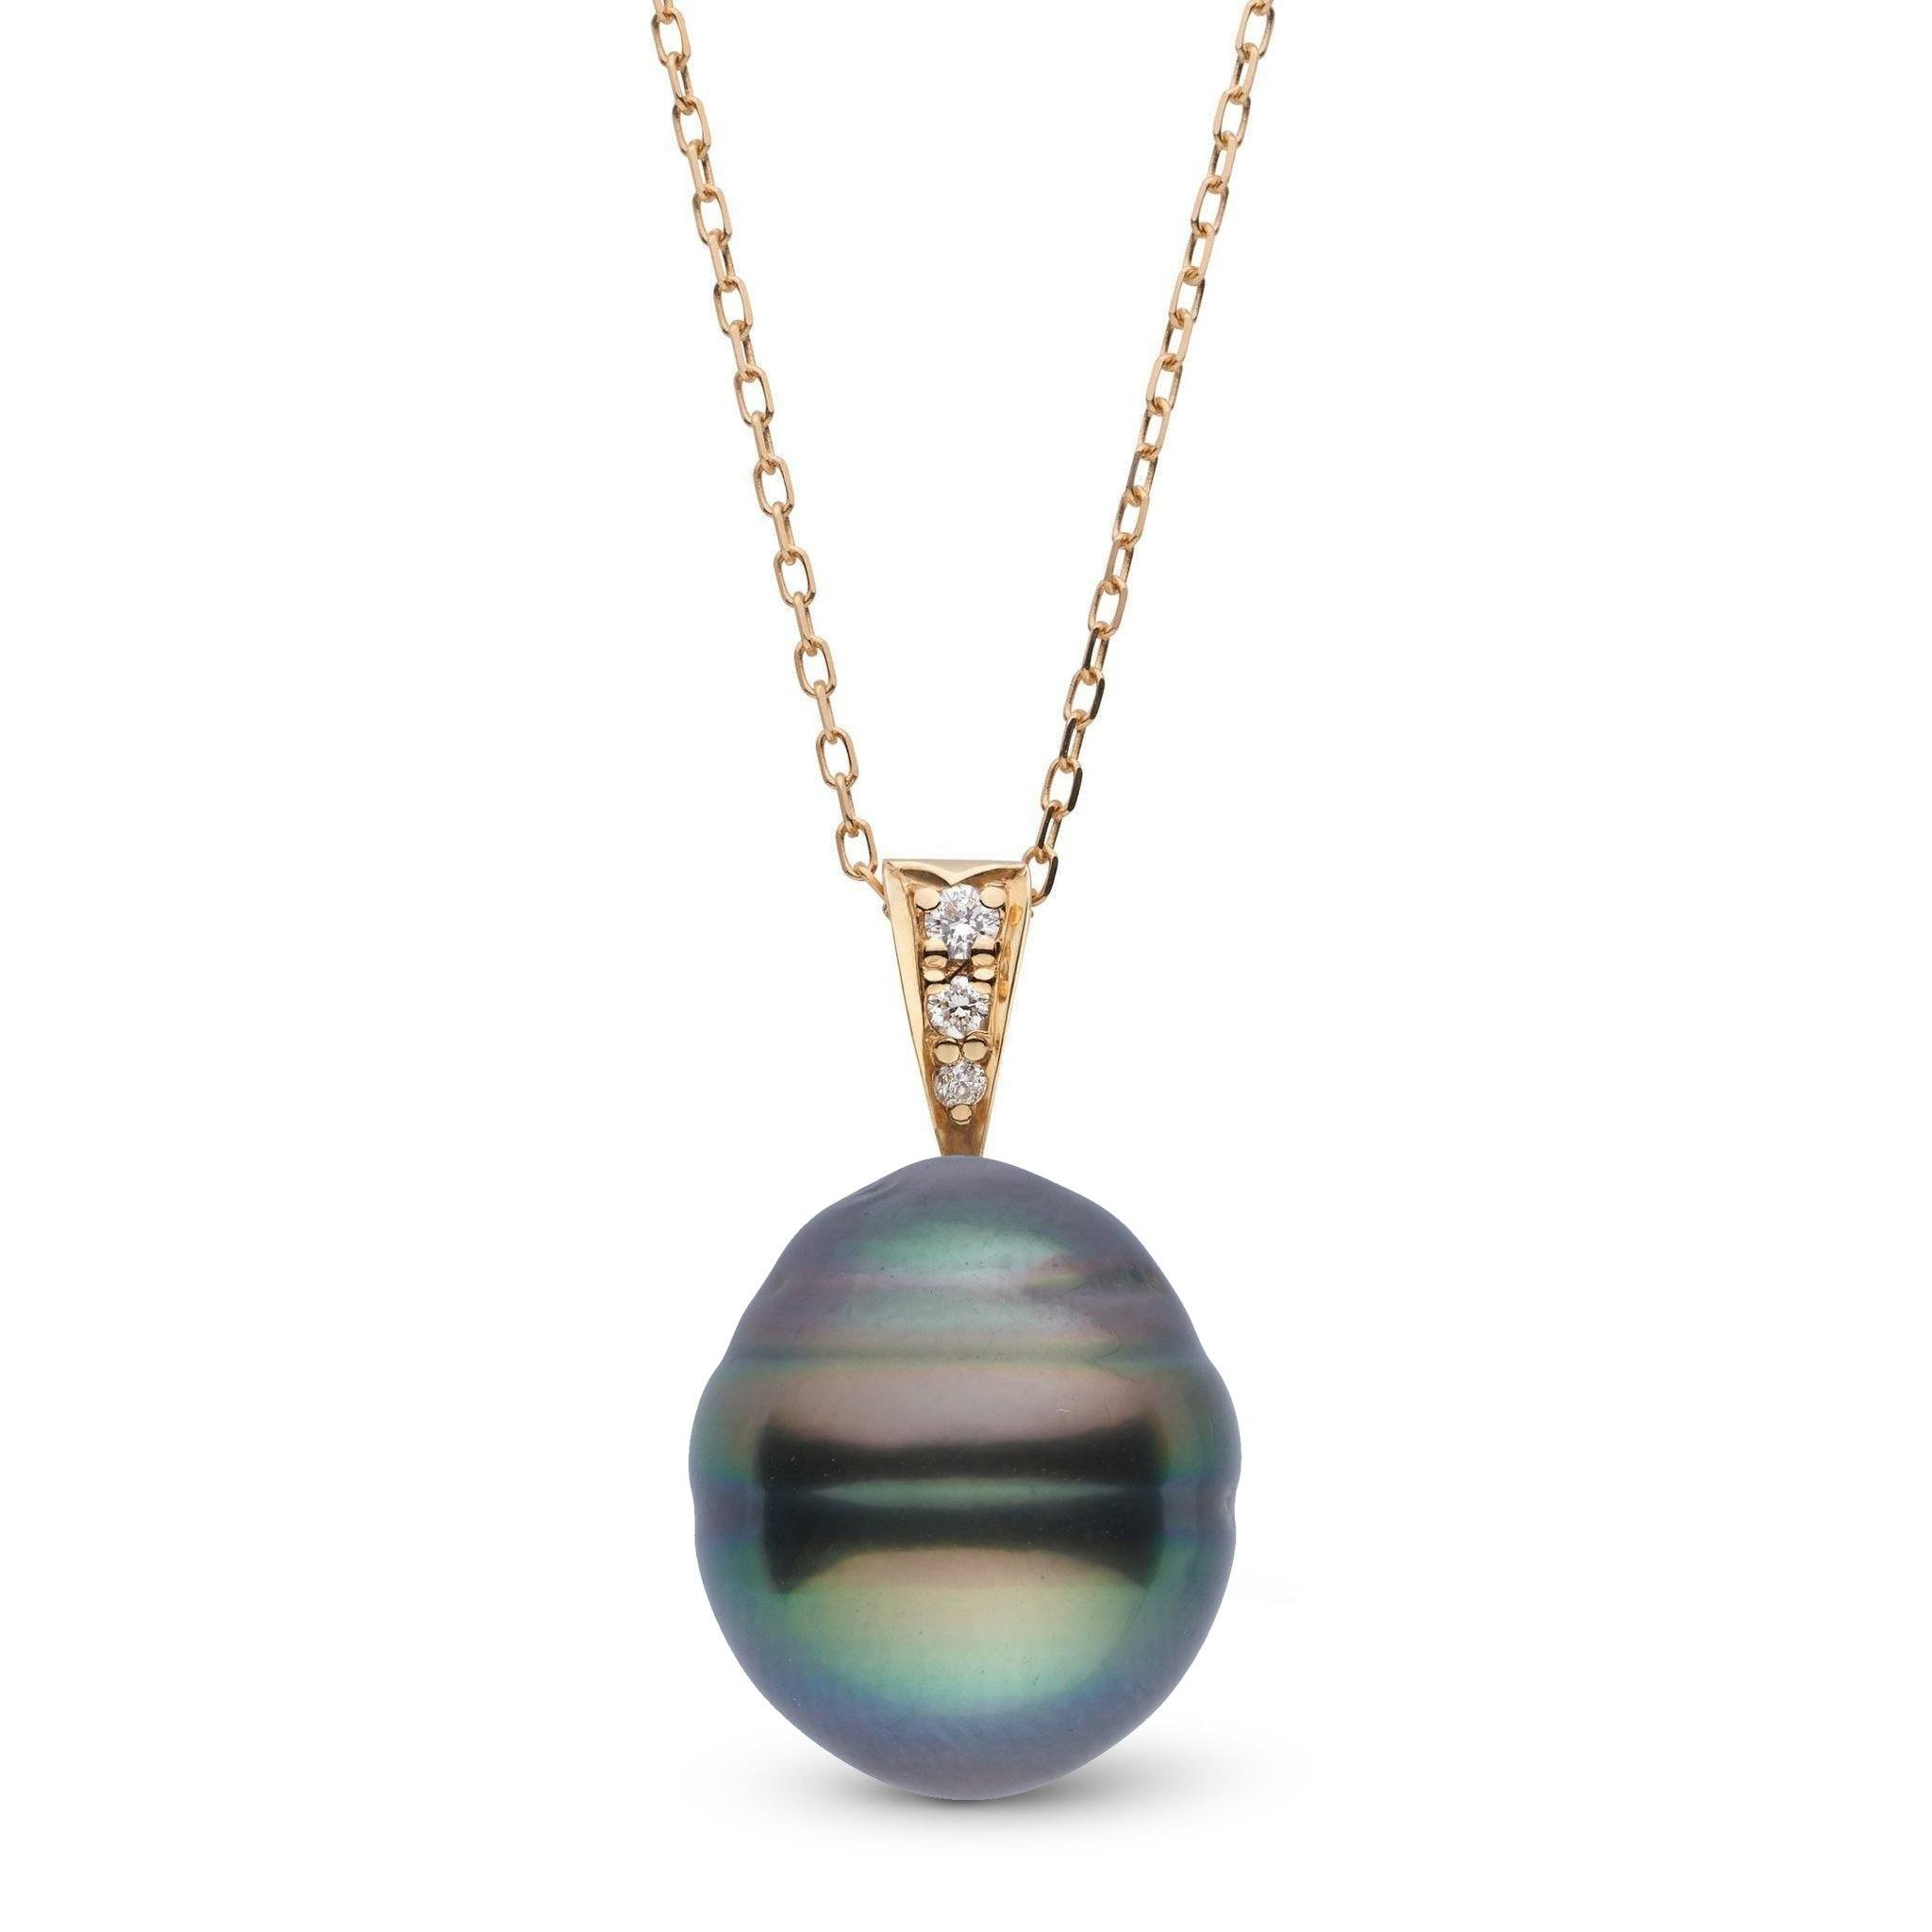 Desire Collection 11.0-12.0 mm Baroque Tahitian Pearl & Diamond Pendant